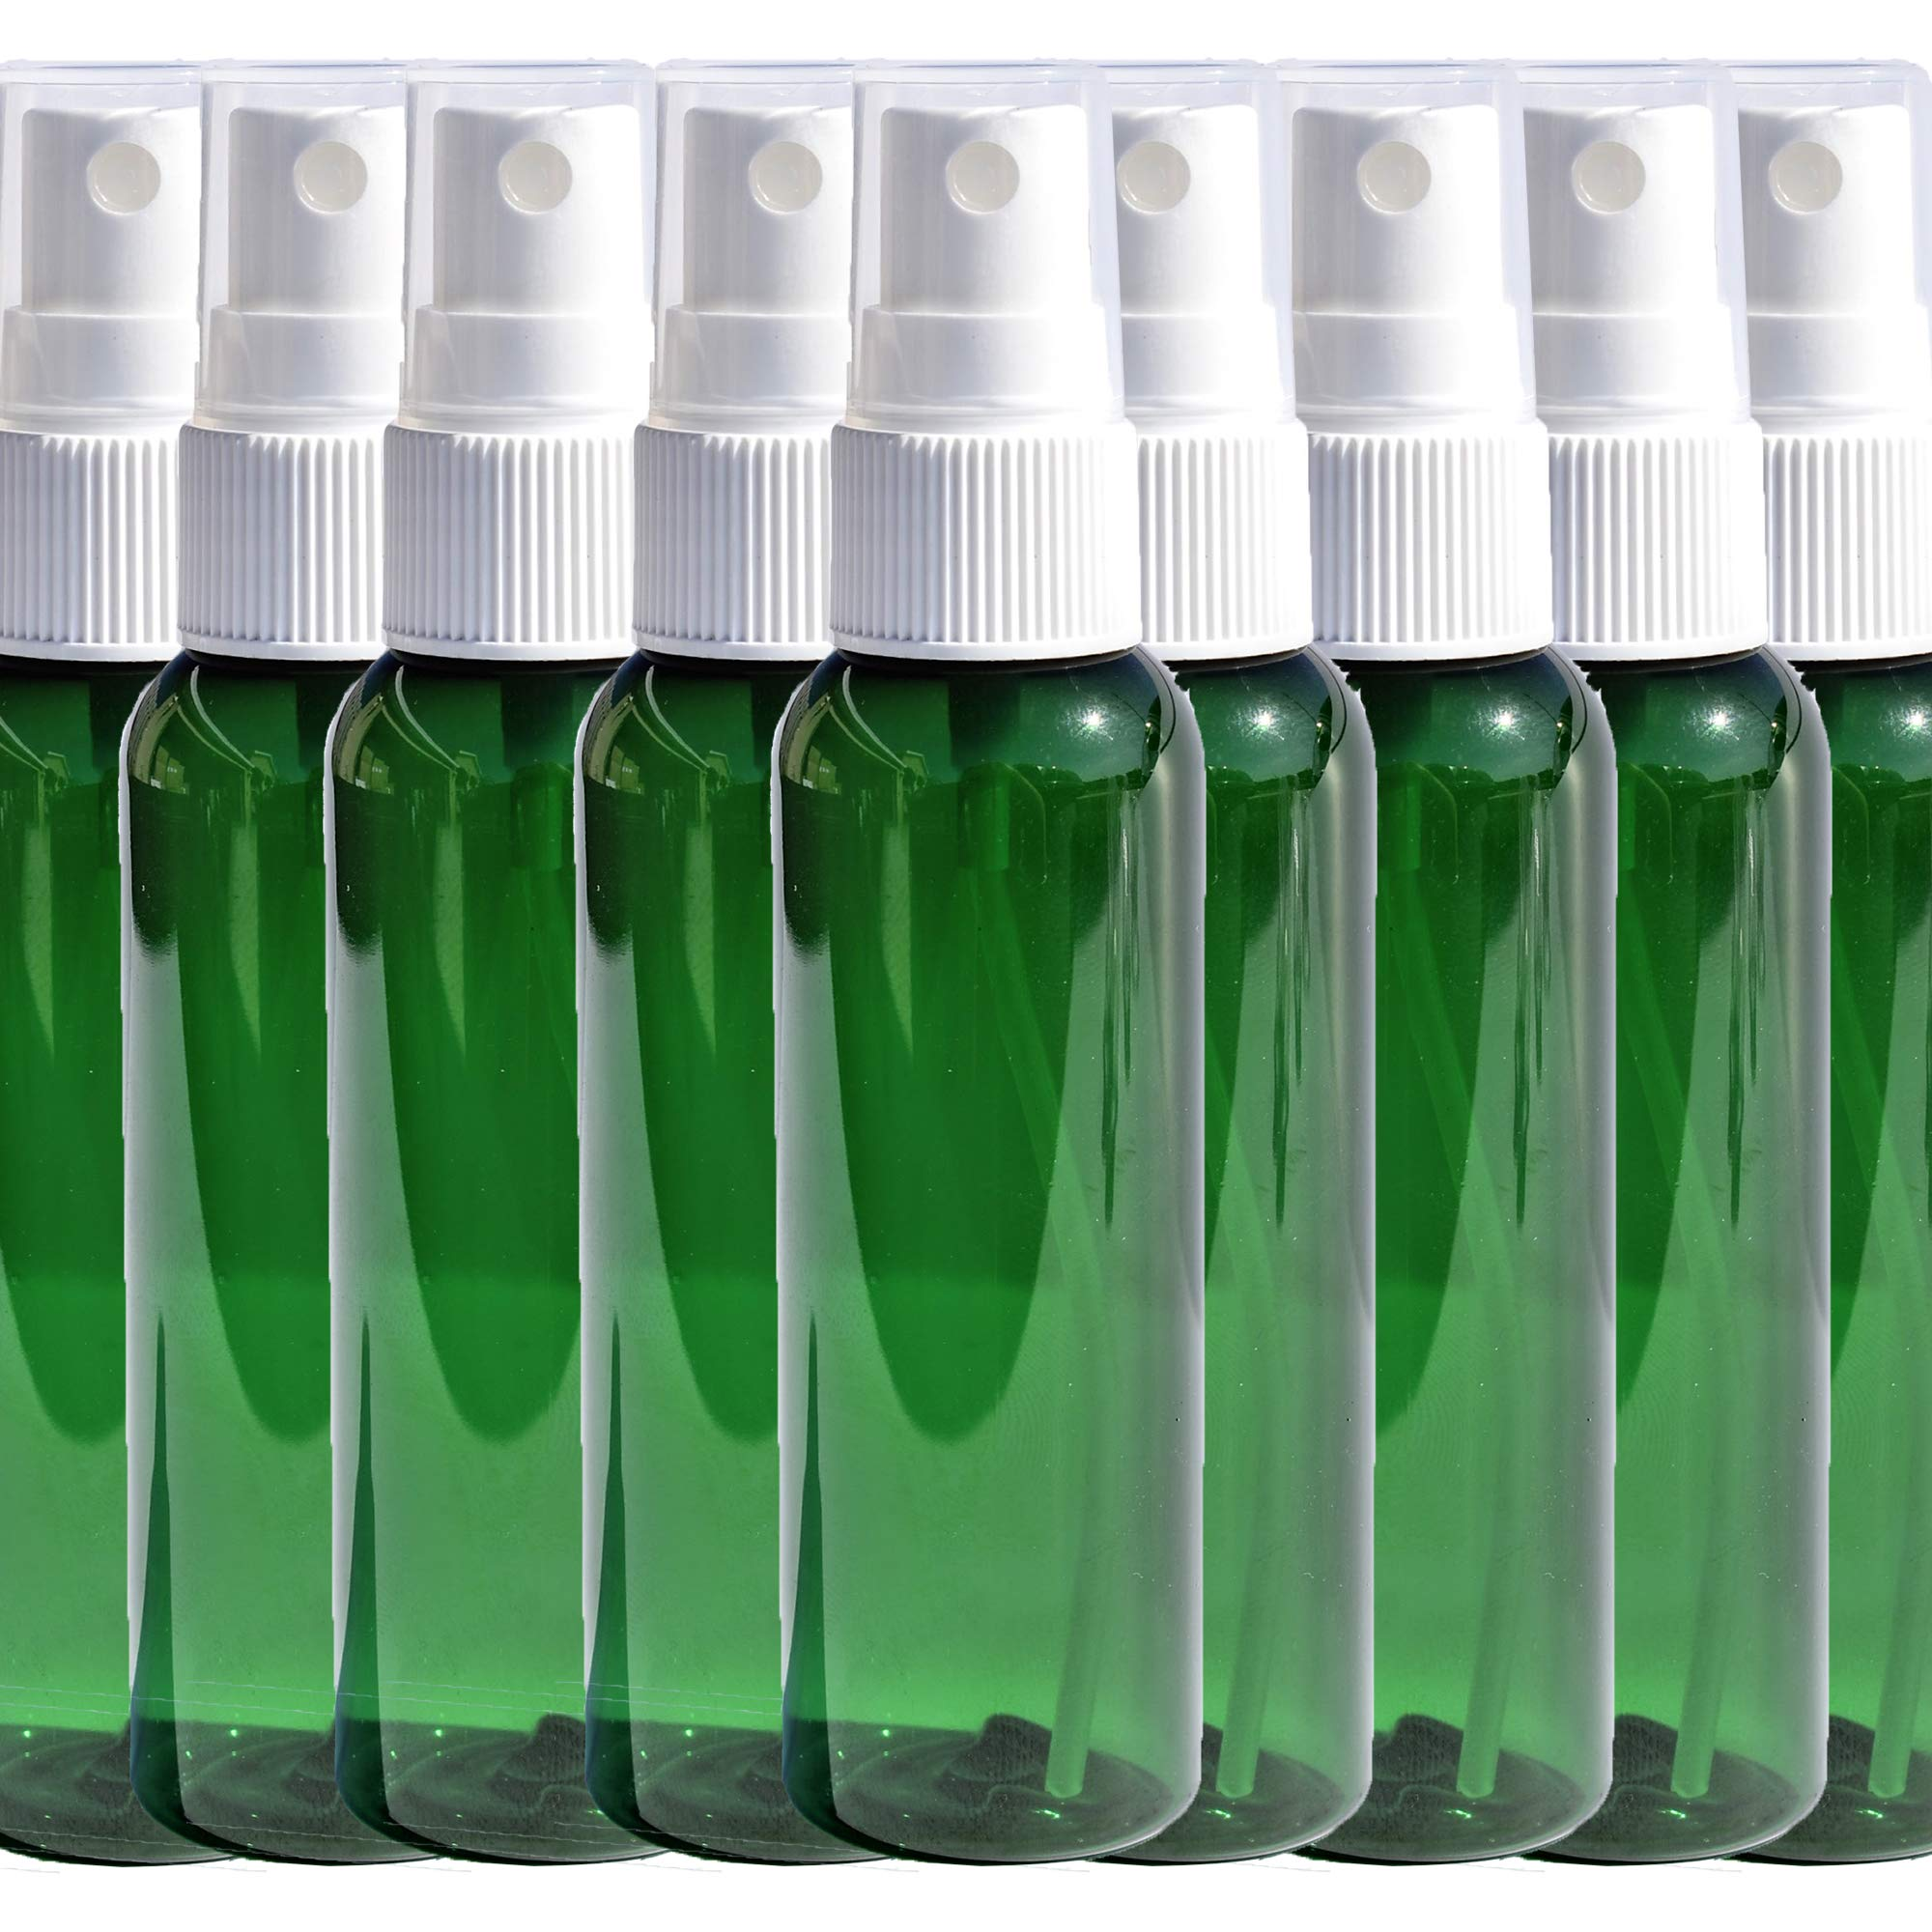 Travel Spray Bottles 2oz. Green PET Plastic Sets with White Fine Misting Sprayers For Essential Oils, Aromatherapy, Perfumes, Bug Repellant, Liquids (50) by Heluva Green